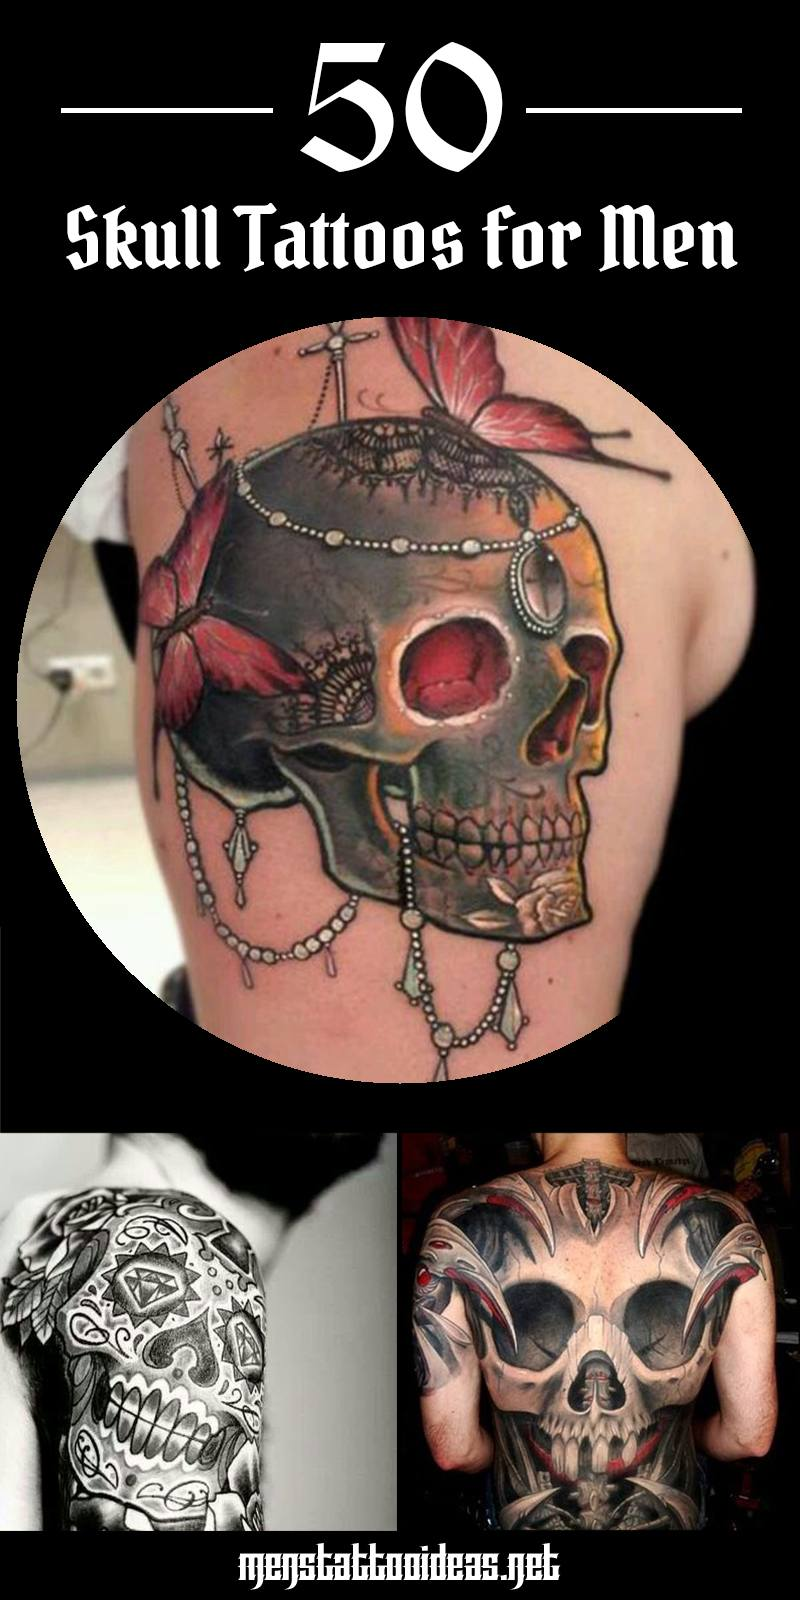 Skull tattoo ideas